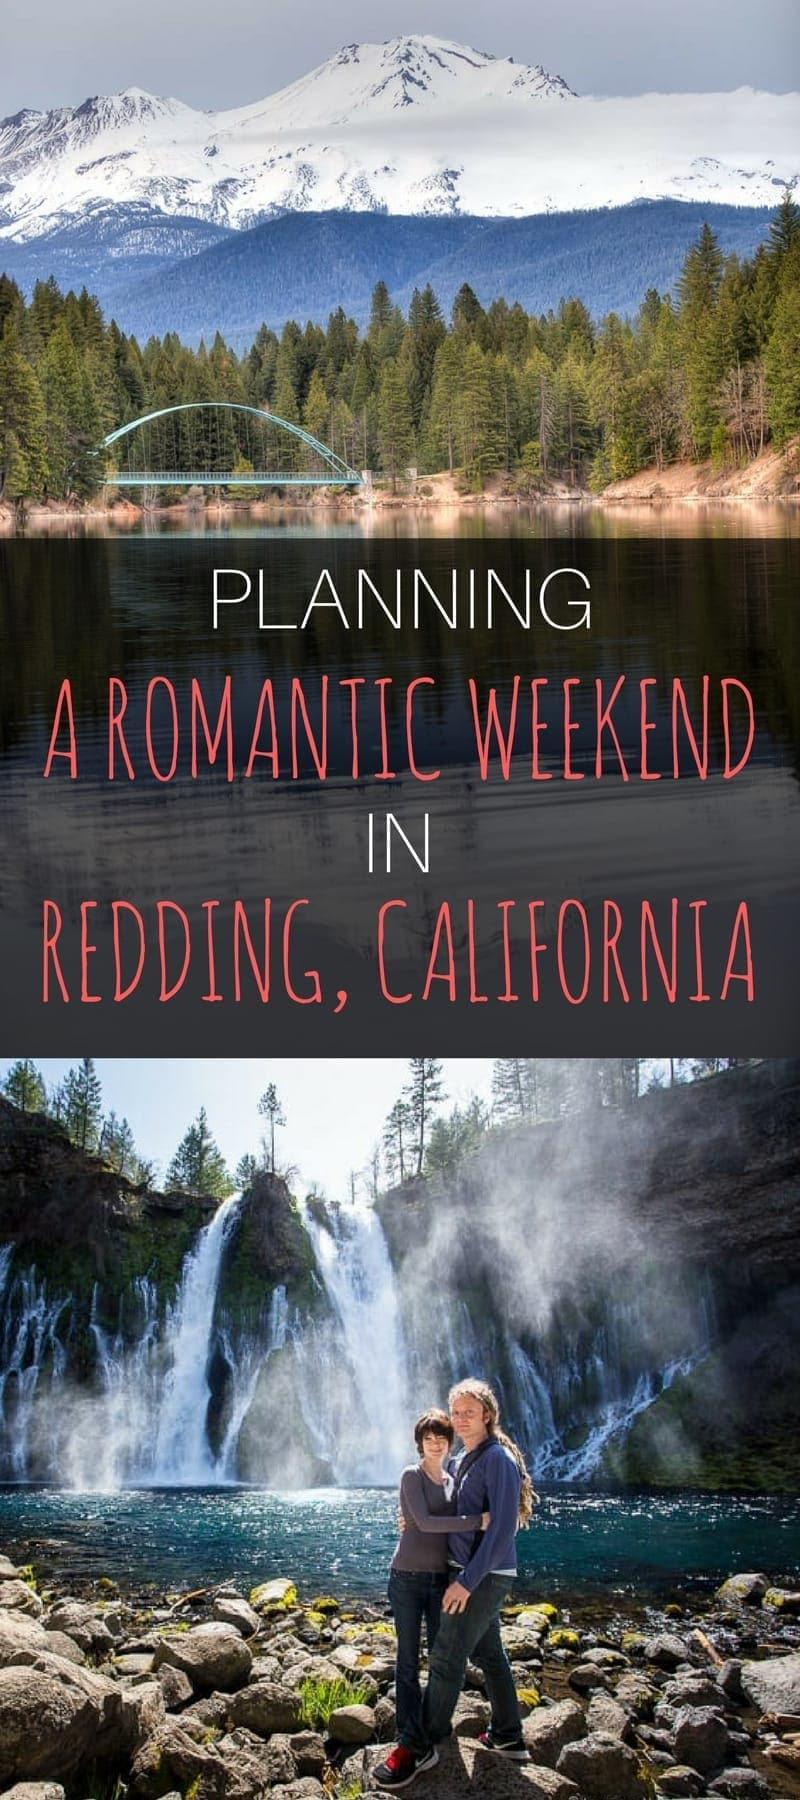 Northern California is a perfect place to escape the crowds and spend some time communing with nature. The entire Shasta Cascade region is an easy drive from Redding California and a perfect place for a romantic weekend away in California. We'll share where to go, what to see, where to eat, and where to stay!